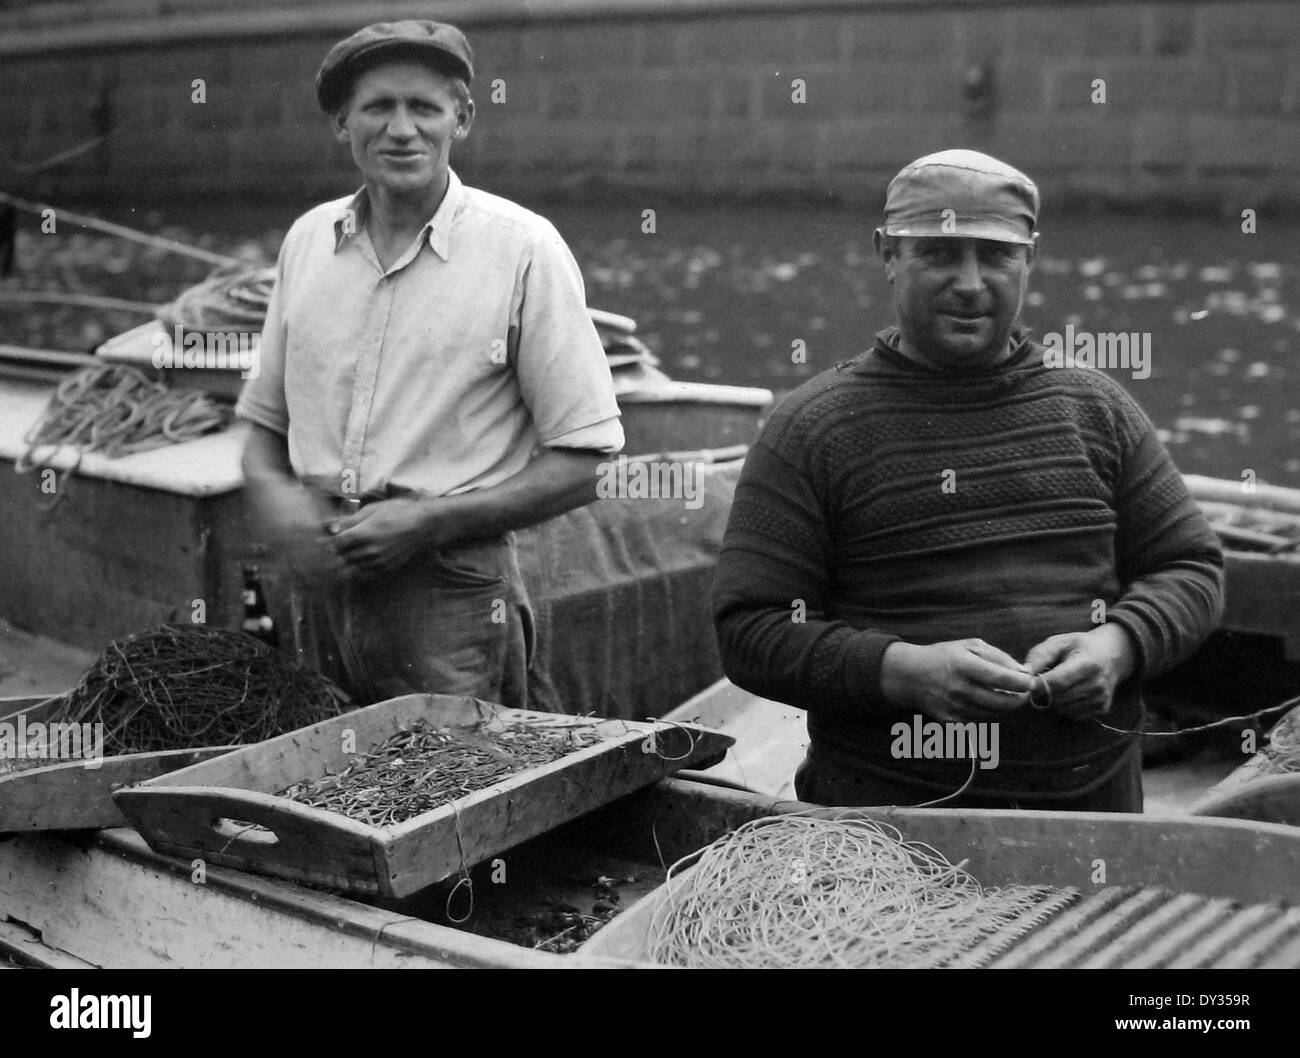 Fishermen Copenhagen Denmark in the 1930s - Stock Image